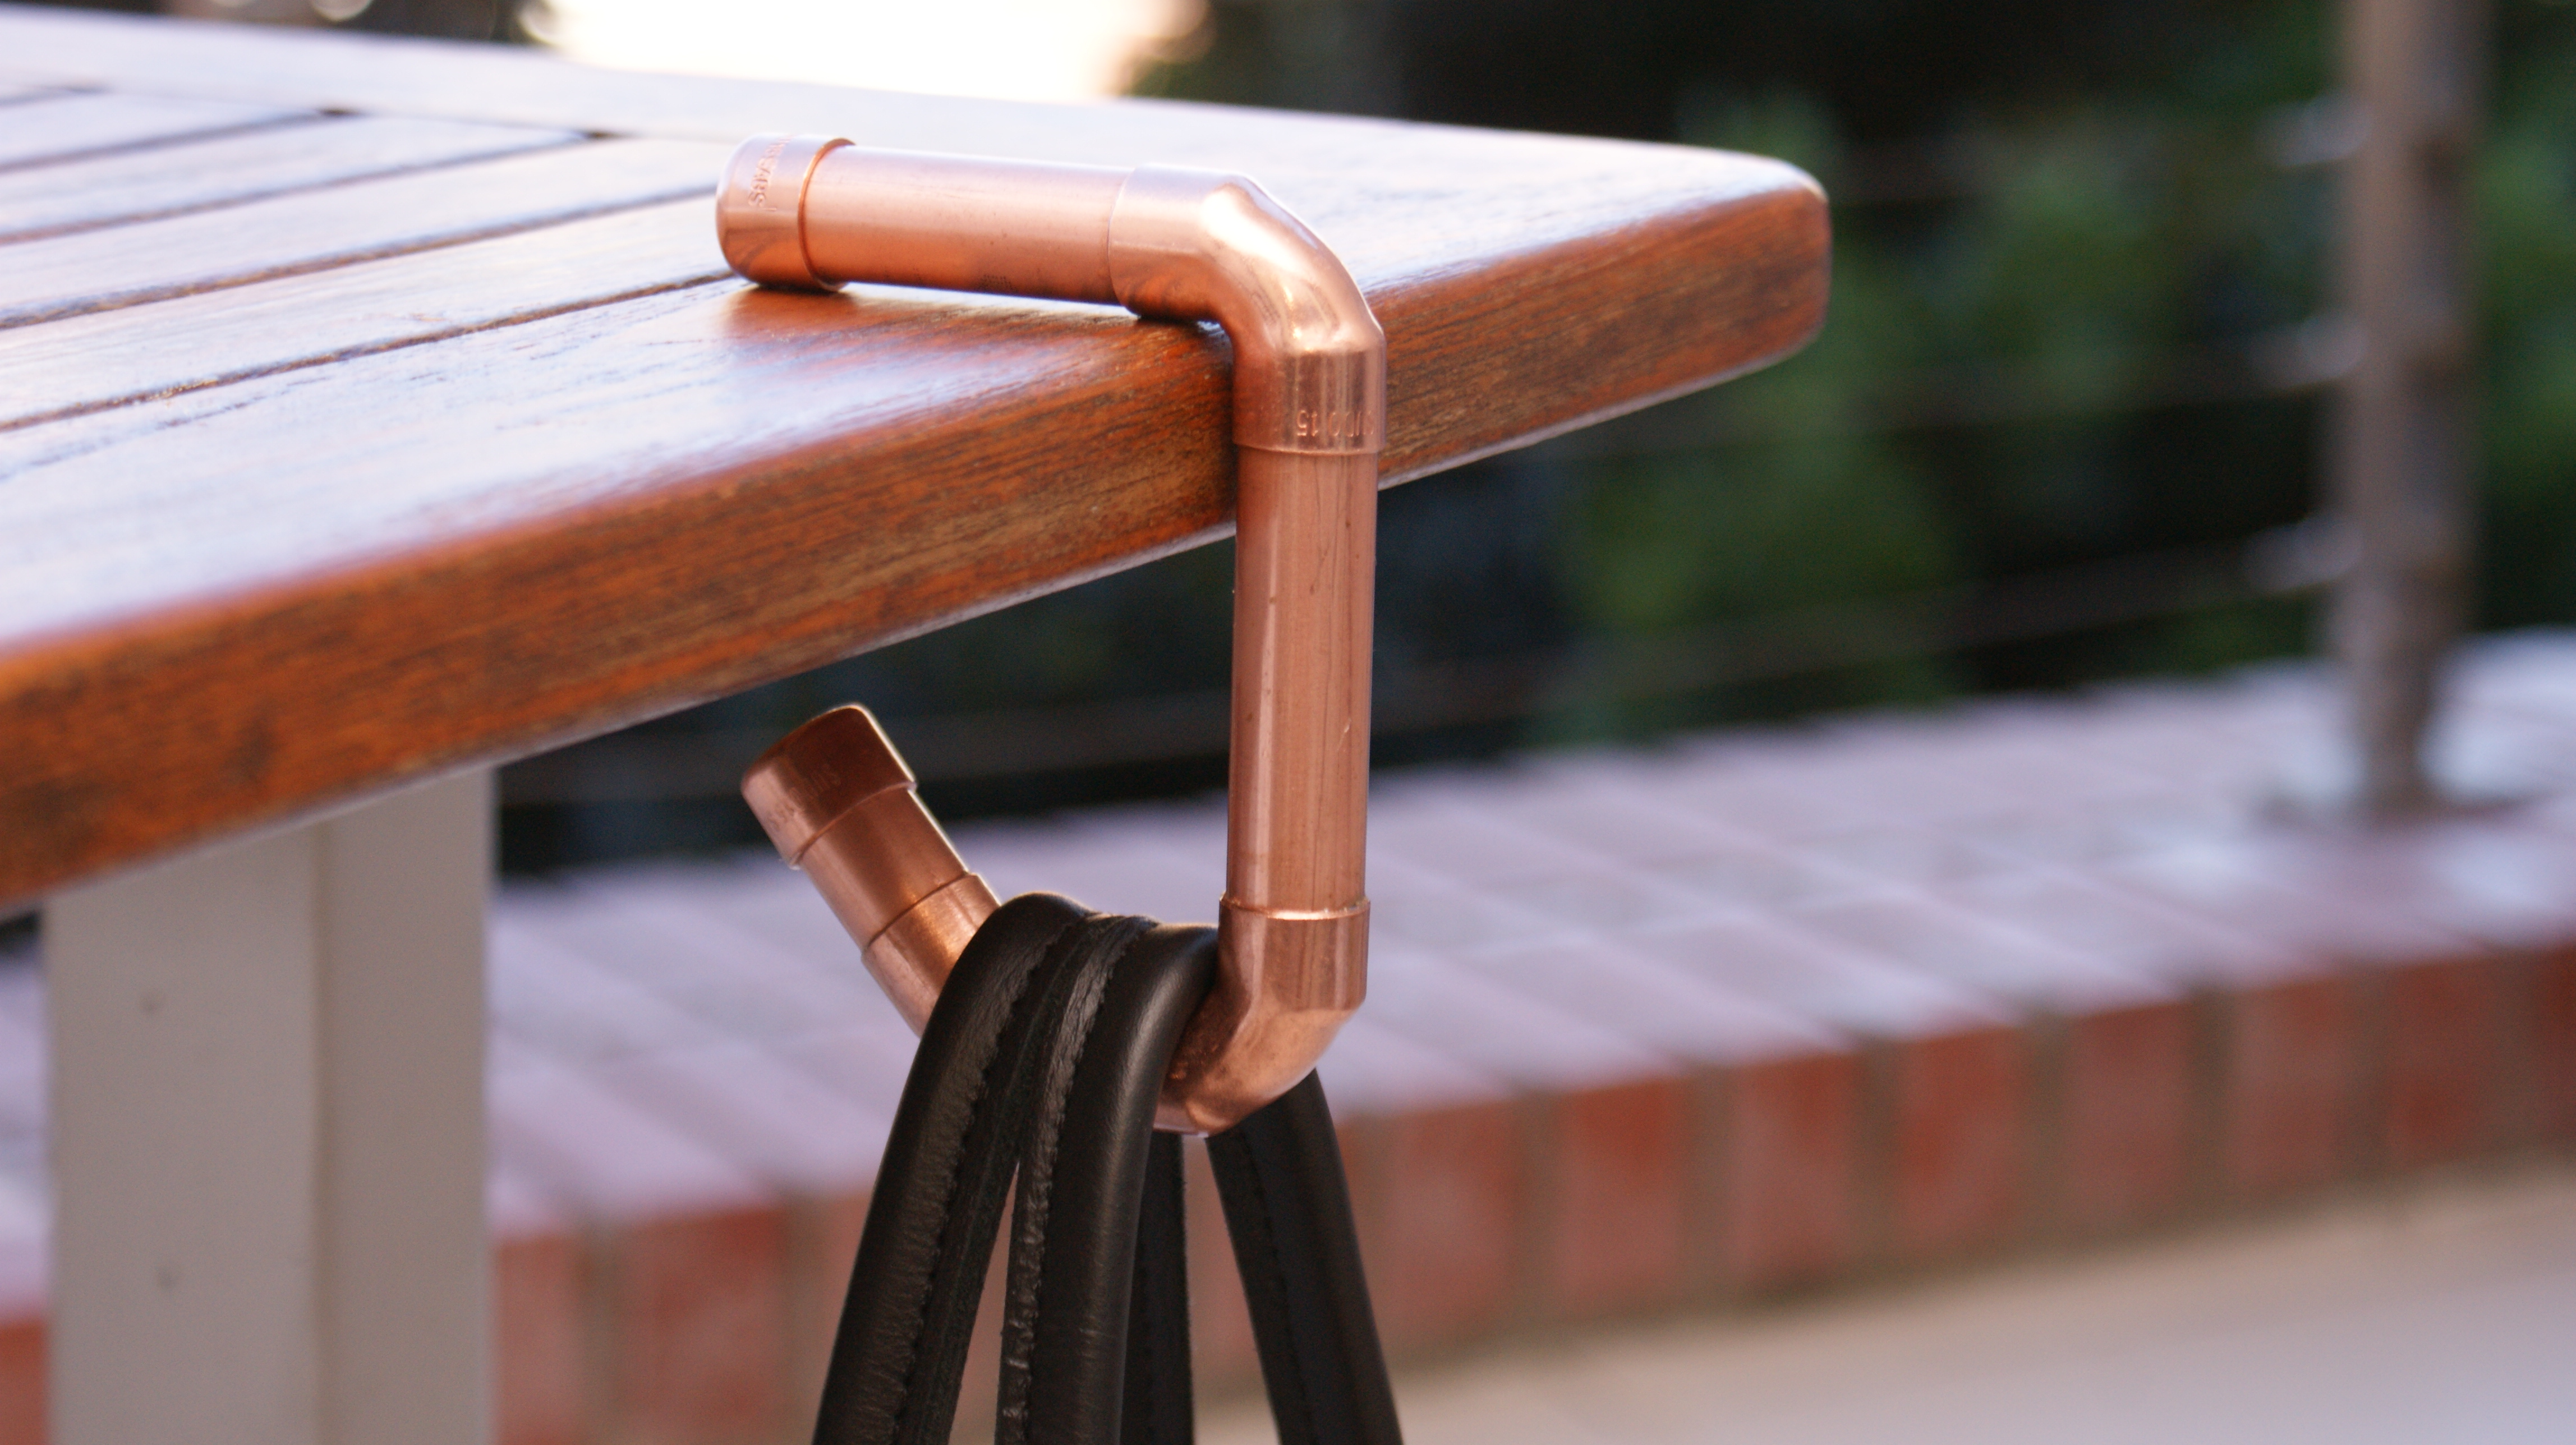 Bespokecopper handbag hook   functional art  - Hand-made by a perfectionist  - Great gift idea  - Material: copper  - Sprayed with anti-tarnish. Polish to restore original shine (as and when needed)